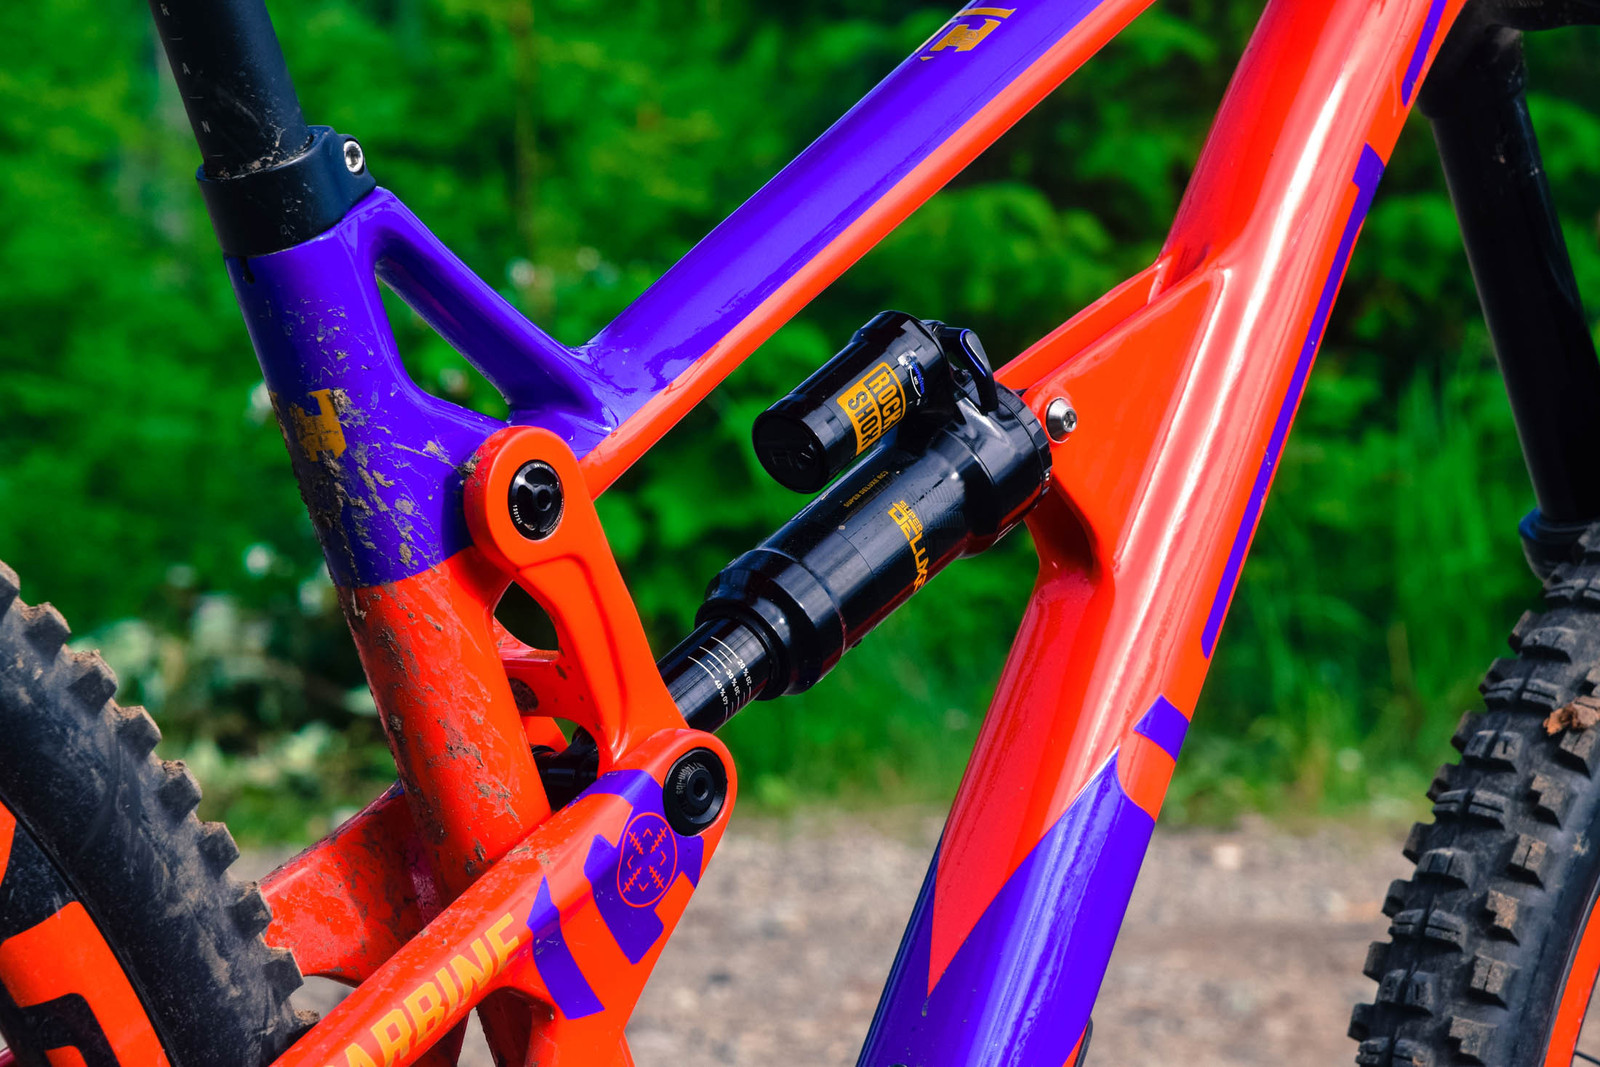 2018 Intense Carbine Factory Reviews Comparisons Specs Element Mtb Fullsus Pride 20 Greey Red He Explained That The Concept Is Not Just Focusing On Suspension But Entire Bike Kinematics Geometry Parts Ergonomics And Balancing All Of